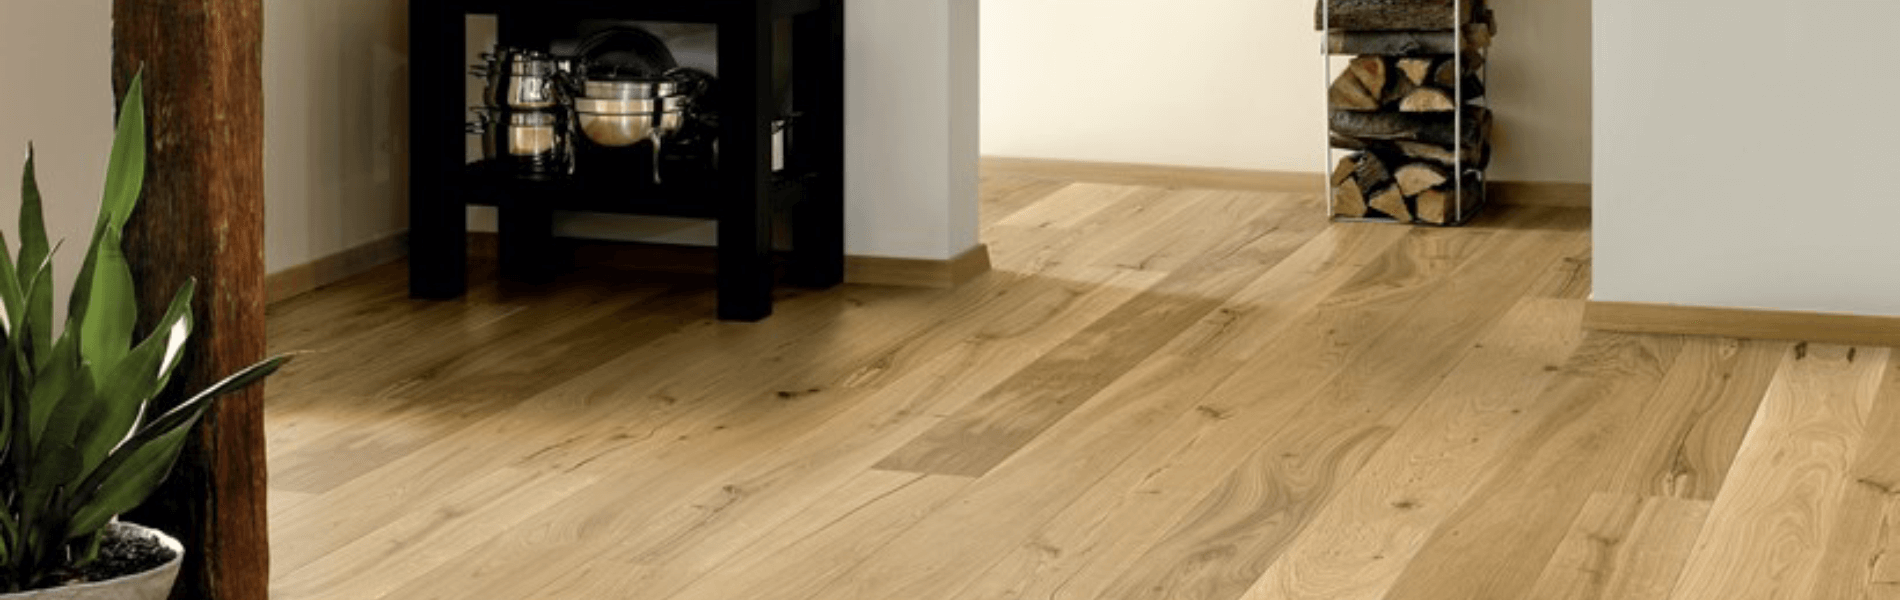 safro-flooring-south-africa